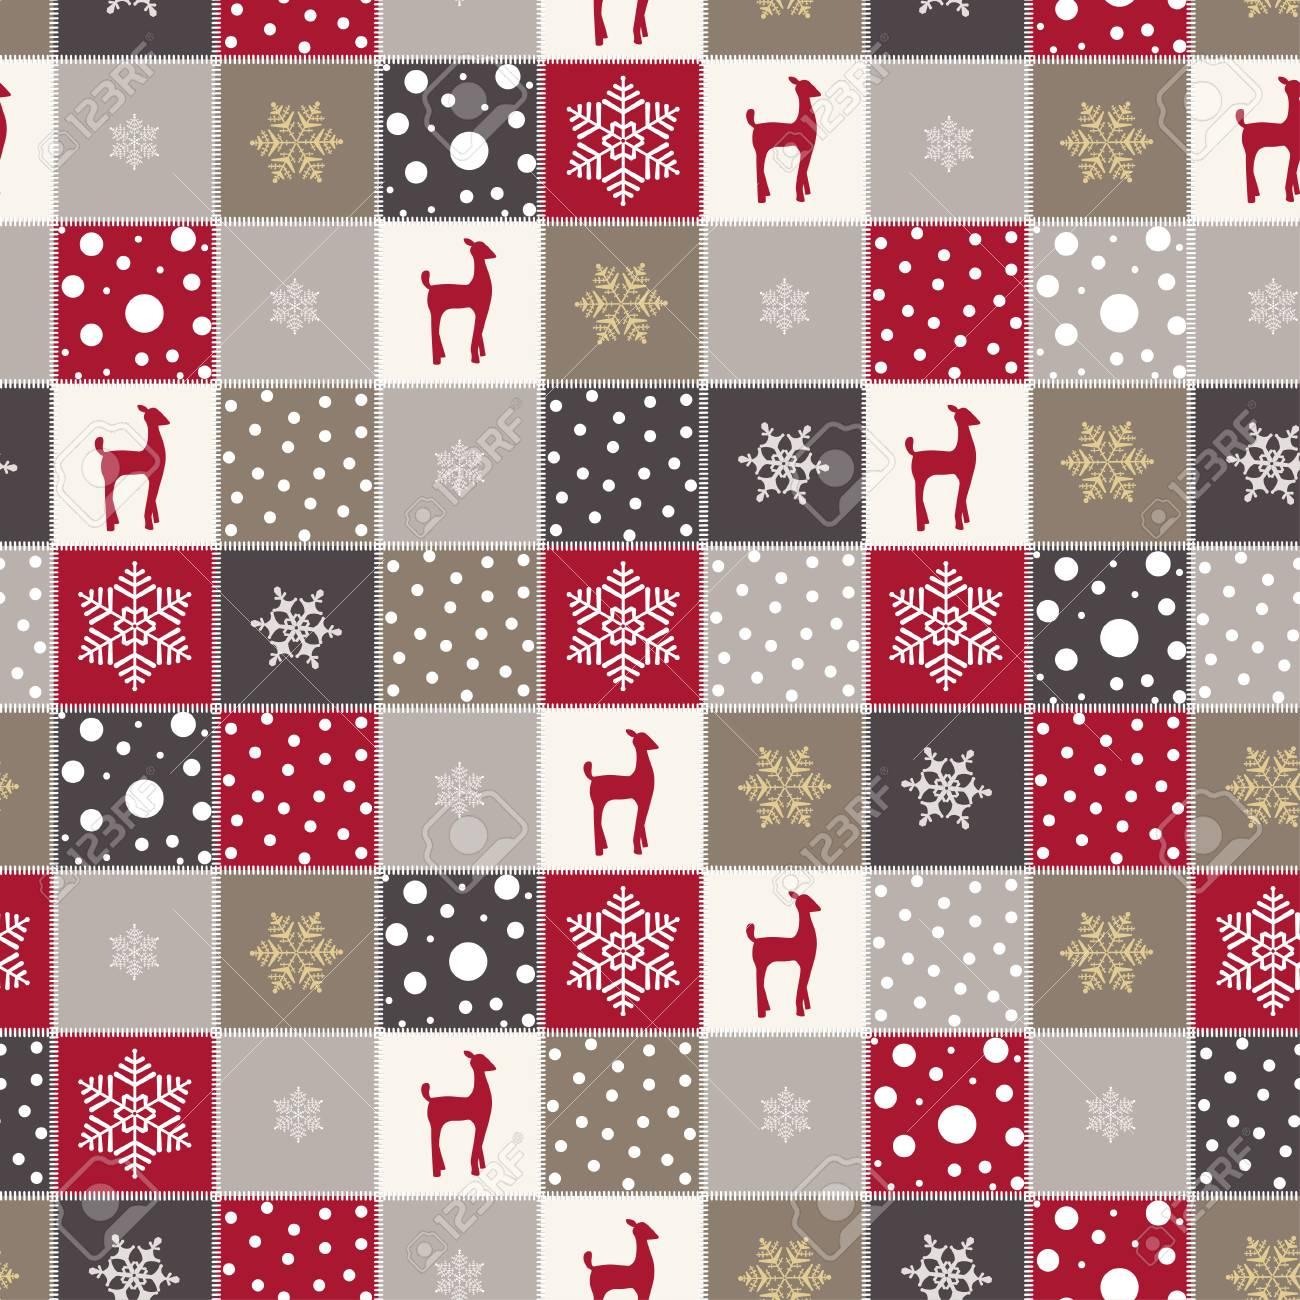 Christmas Textures.Christmas Background With Red Reindeer Snow And Snowflakes